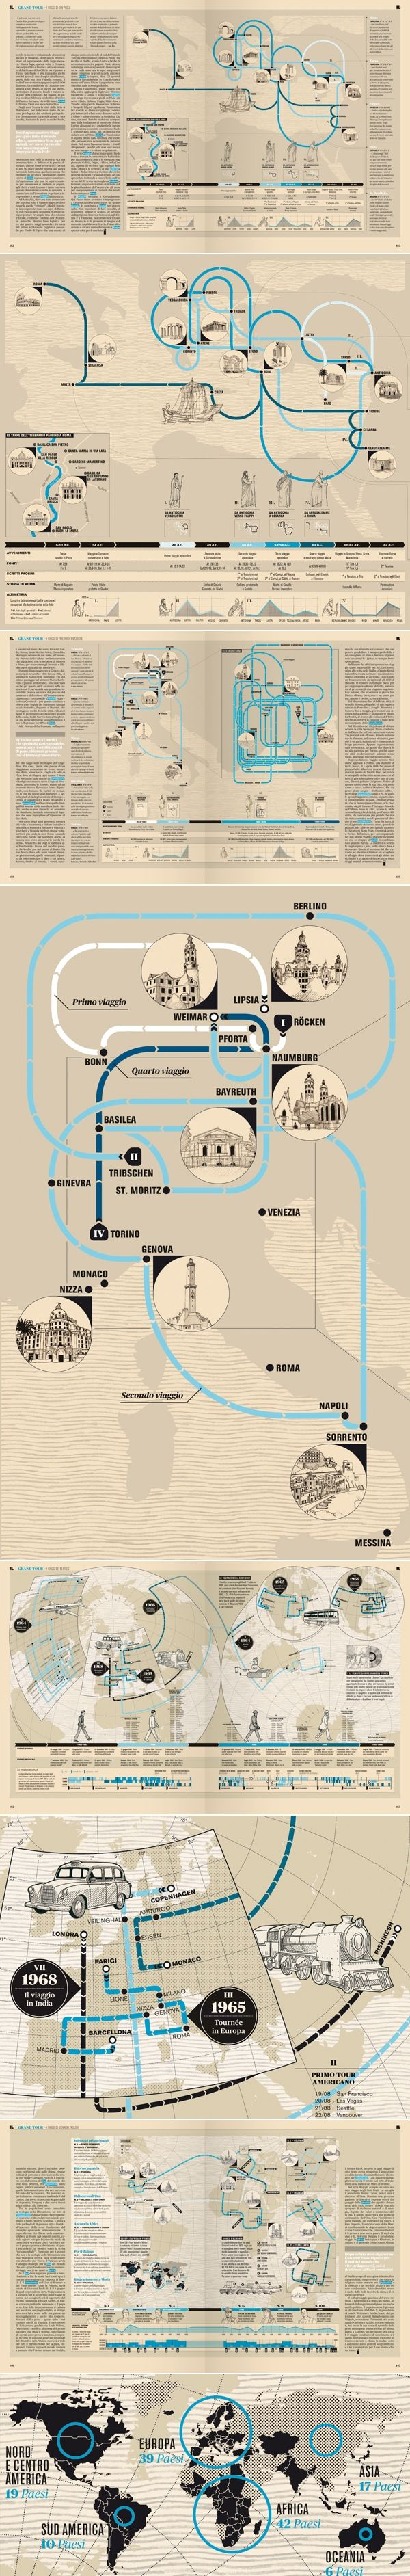 Gran Tour - the life of historical characters shown by #infographic language